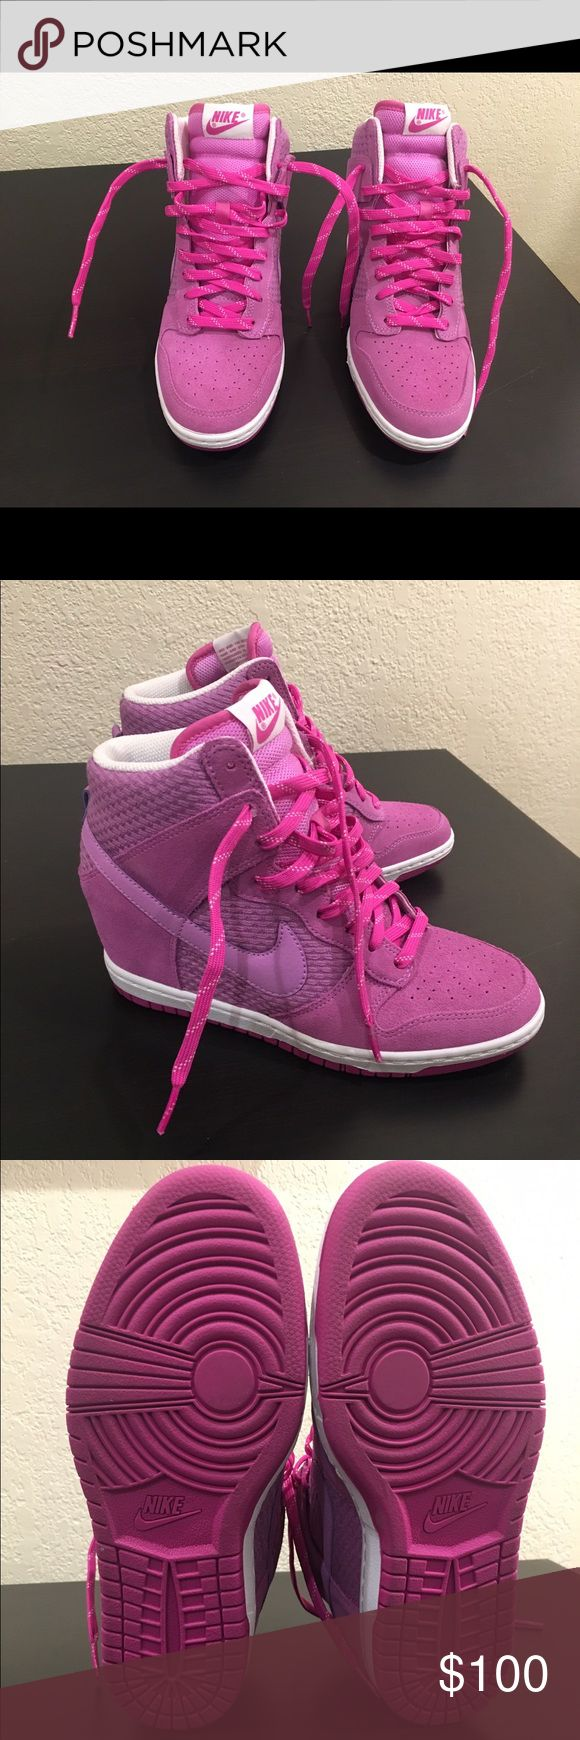 Nike Dunk SkyHI Essential Women's FuchsiaGlow NEW Nike Dunk Sky HI Essential Women's US 8.0 Fuchsia Glow MPN 644877-500. Wedge style sneaker. No box. Nike Shoes Sneakers